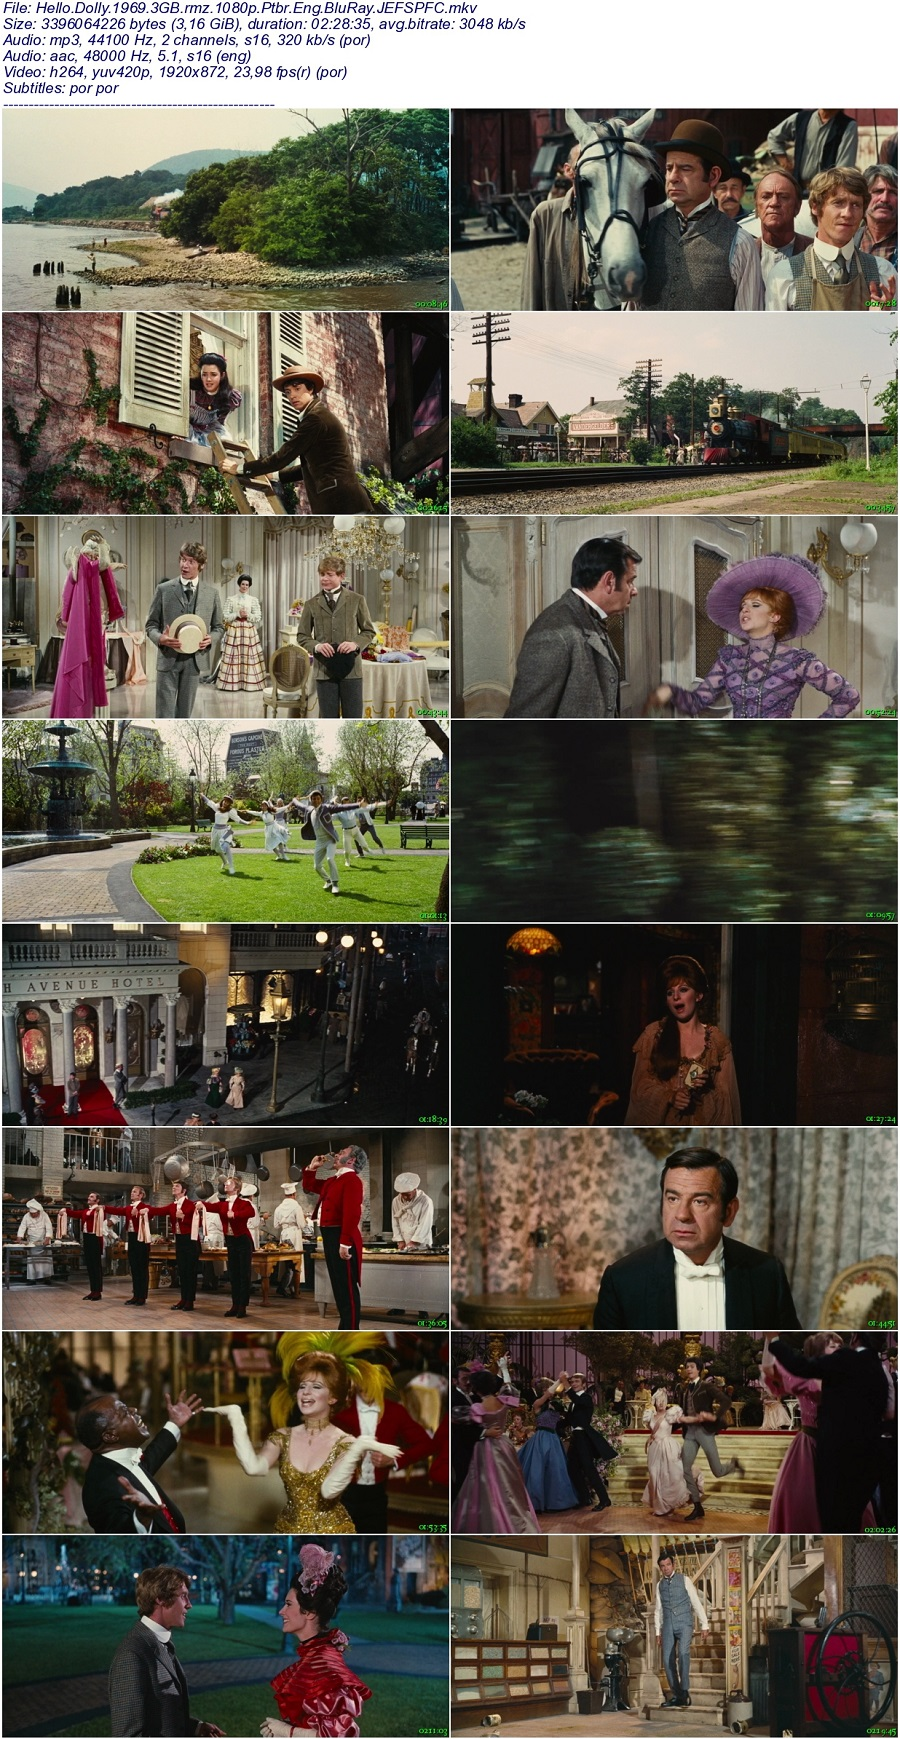 ALÔ, DOLLY! (DUAL ÁUDIO/1080P) – 1969 Hello.Dolly.1969.3GB.rmz.1080p.Ptbr.Eng.BluRay.JEFSPFC